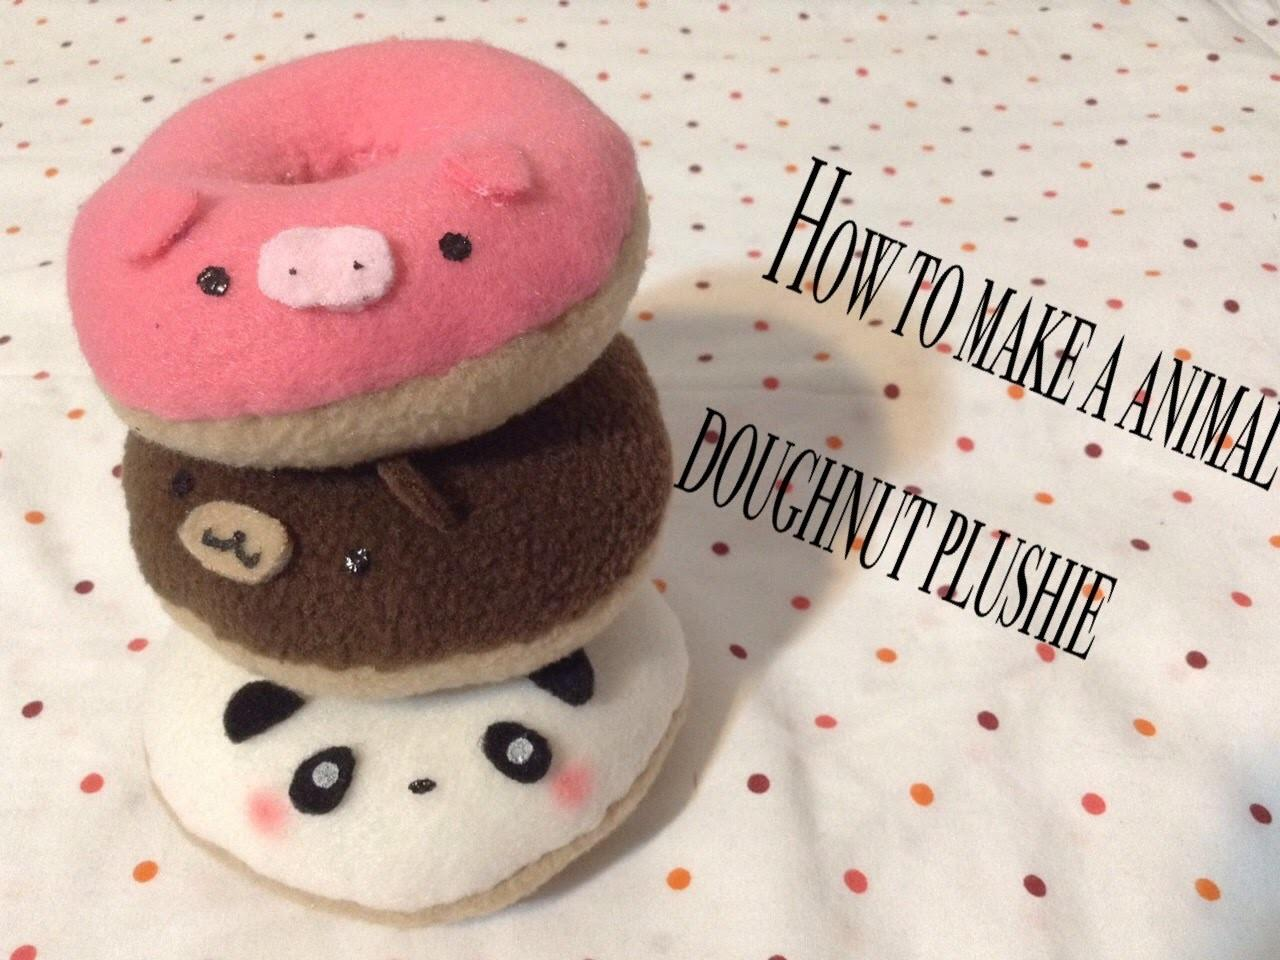 Make Animal Doughnut Plushie